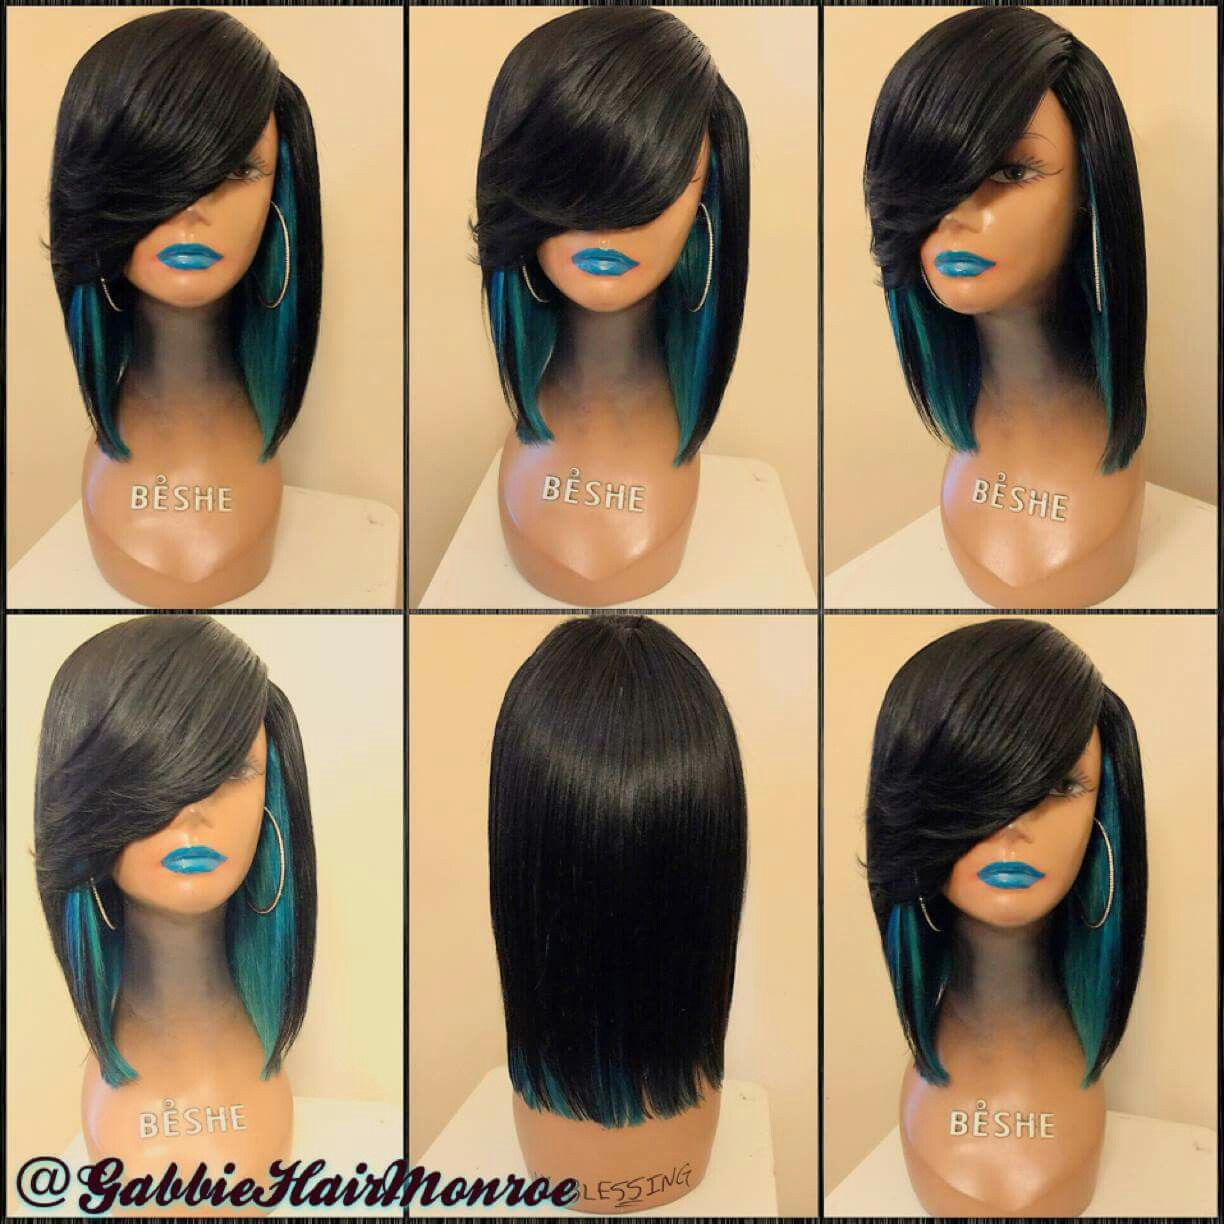 Pin by samai on various hairstyles pinterest wig hair style and